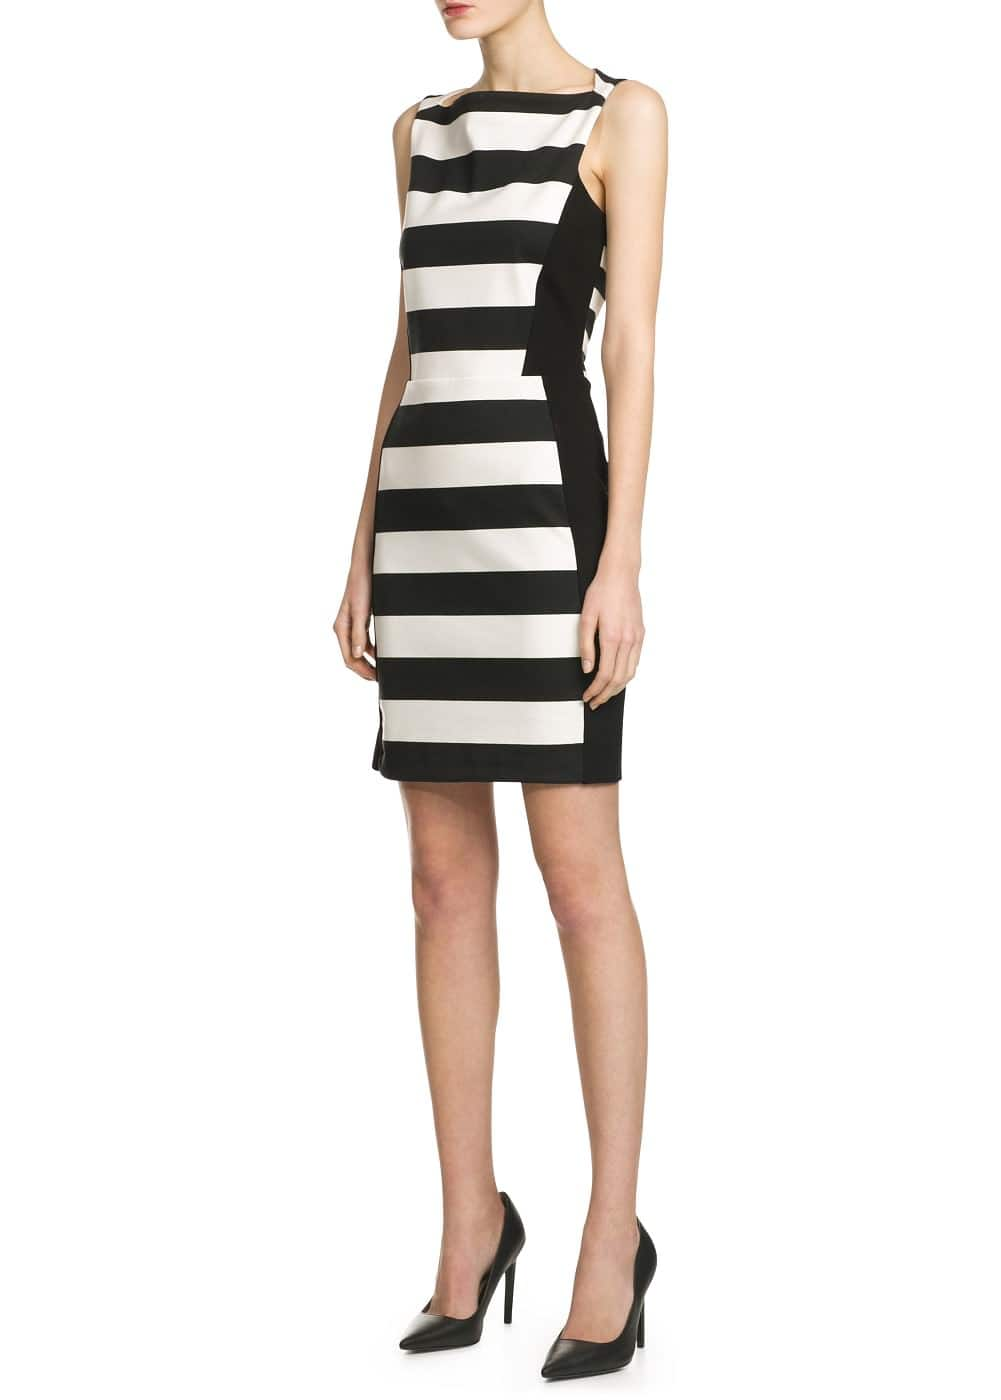 Monochrome striped dress